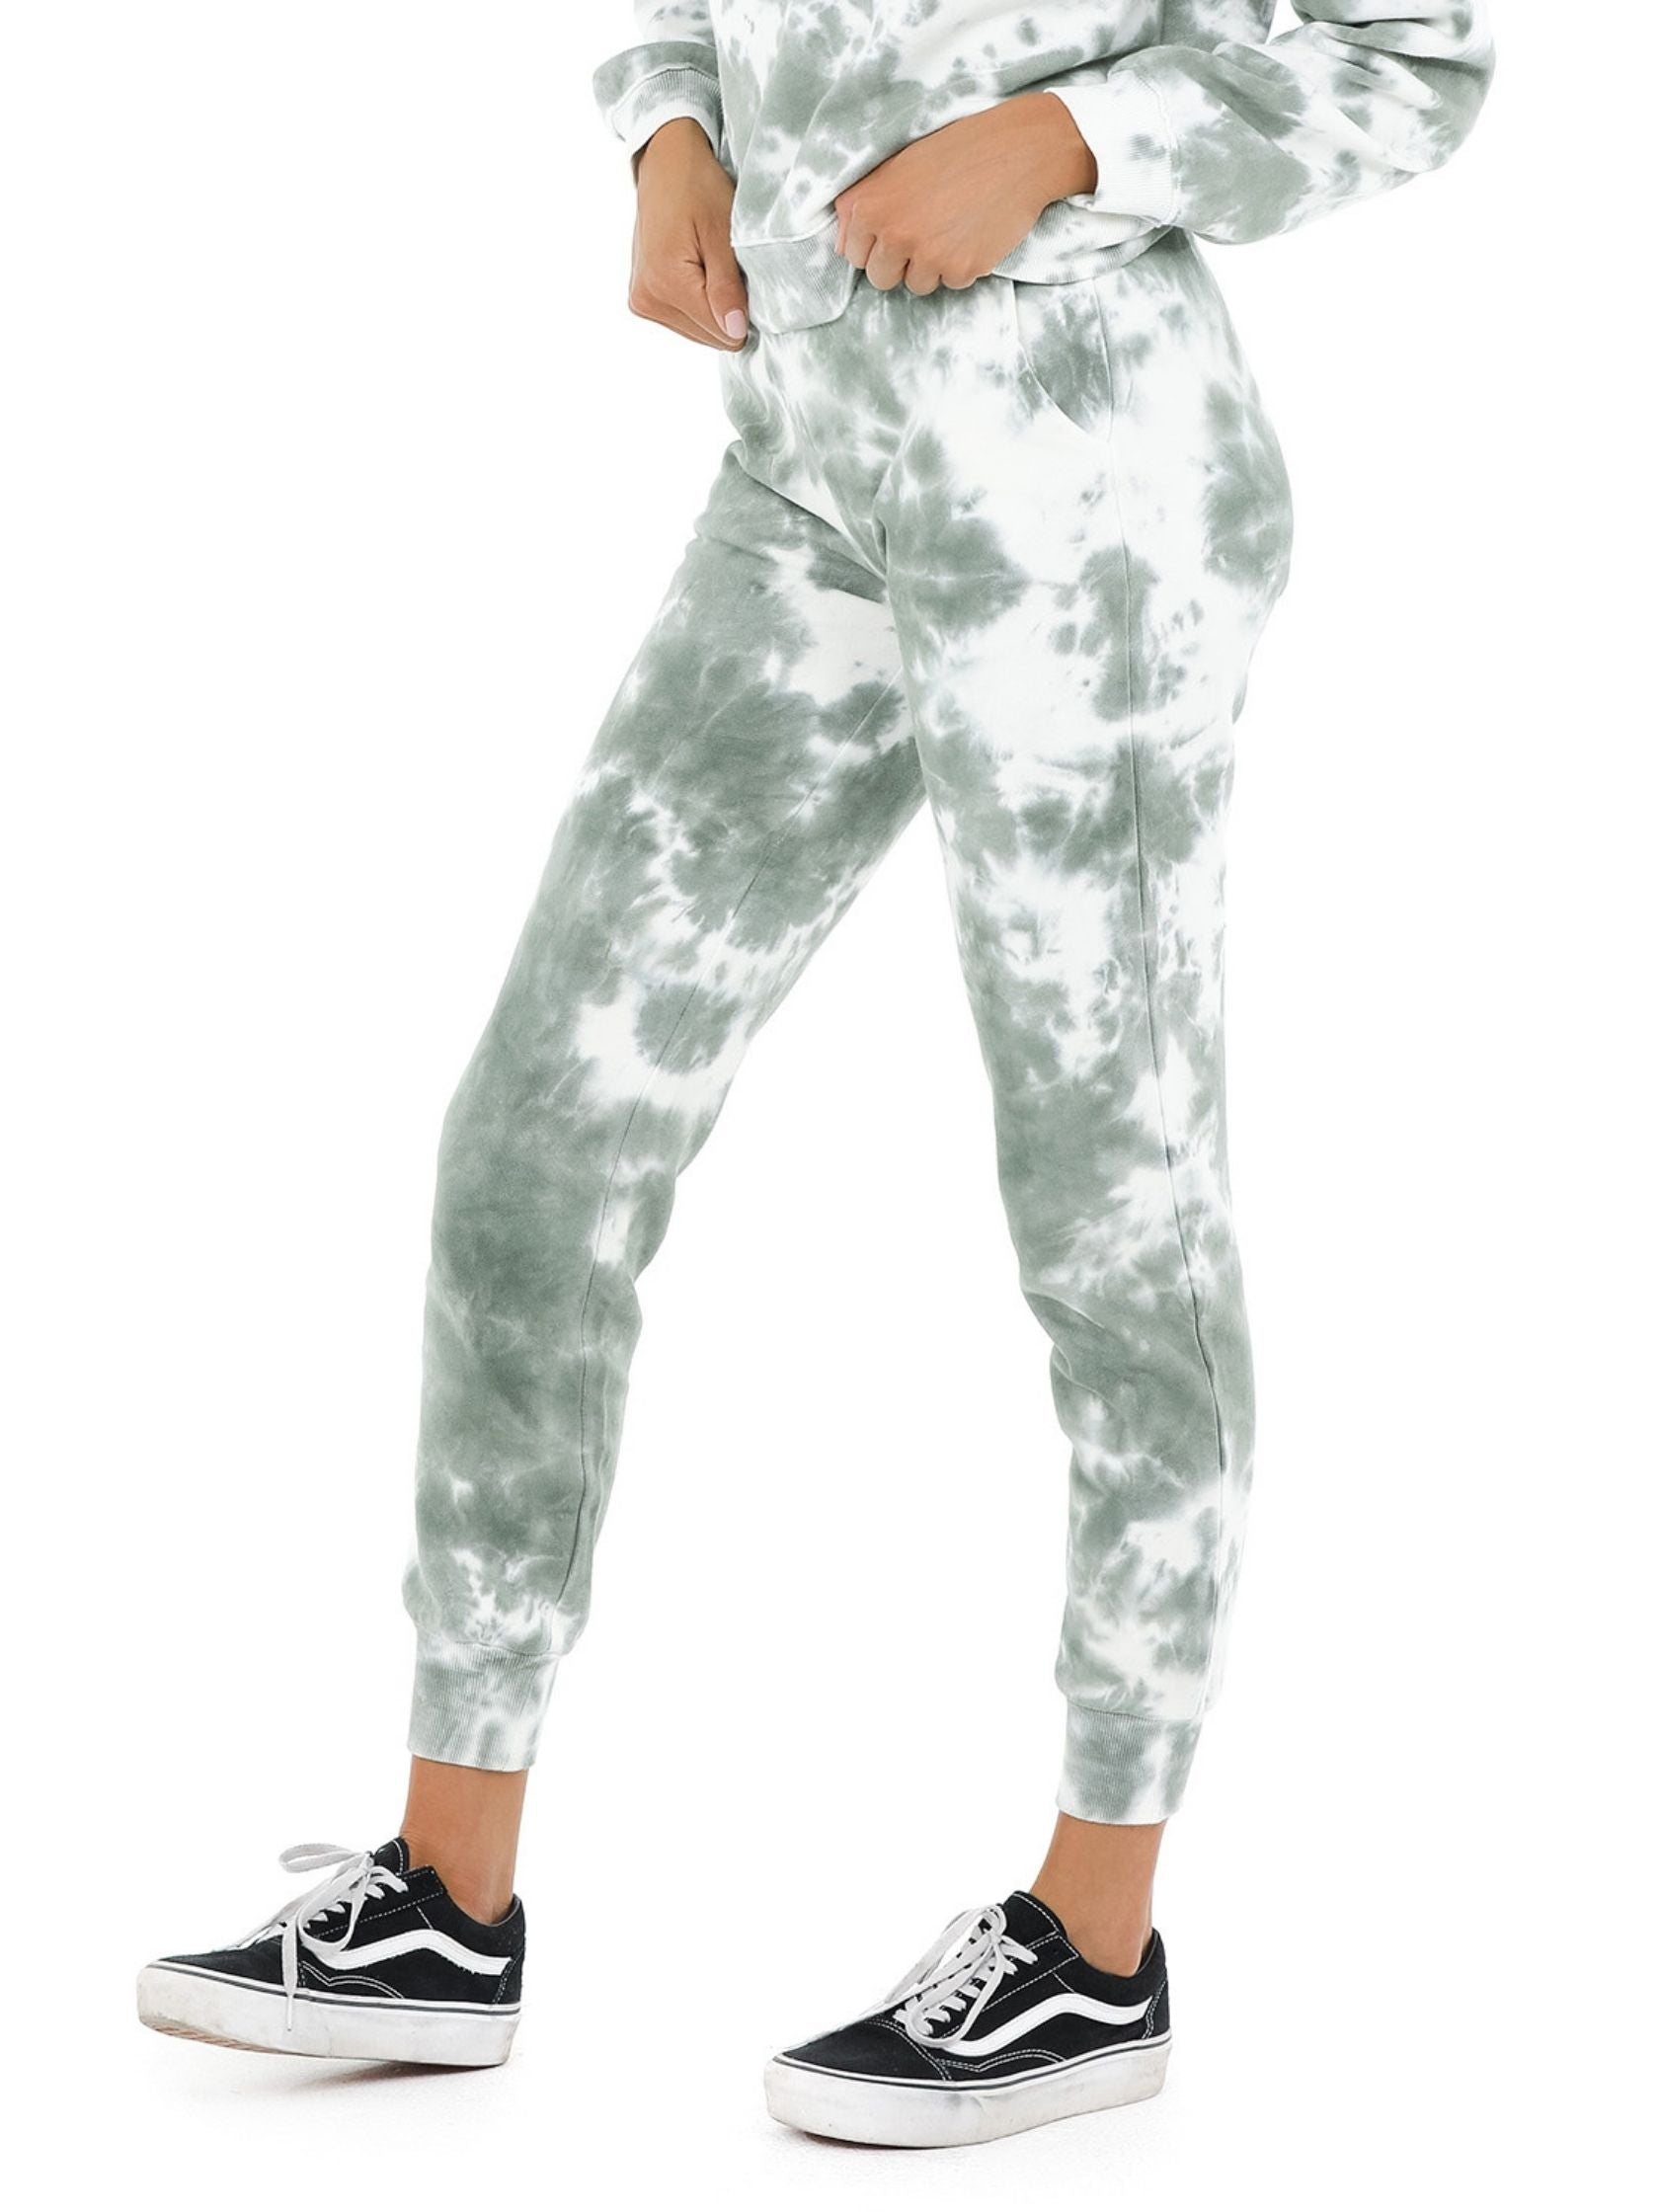 Women wearing a joggers rental from 525 called French Terry Tie Dye Joggers